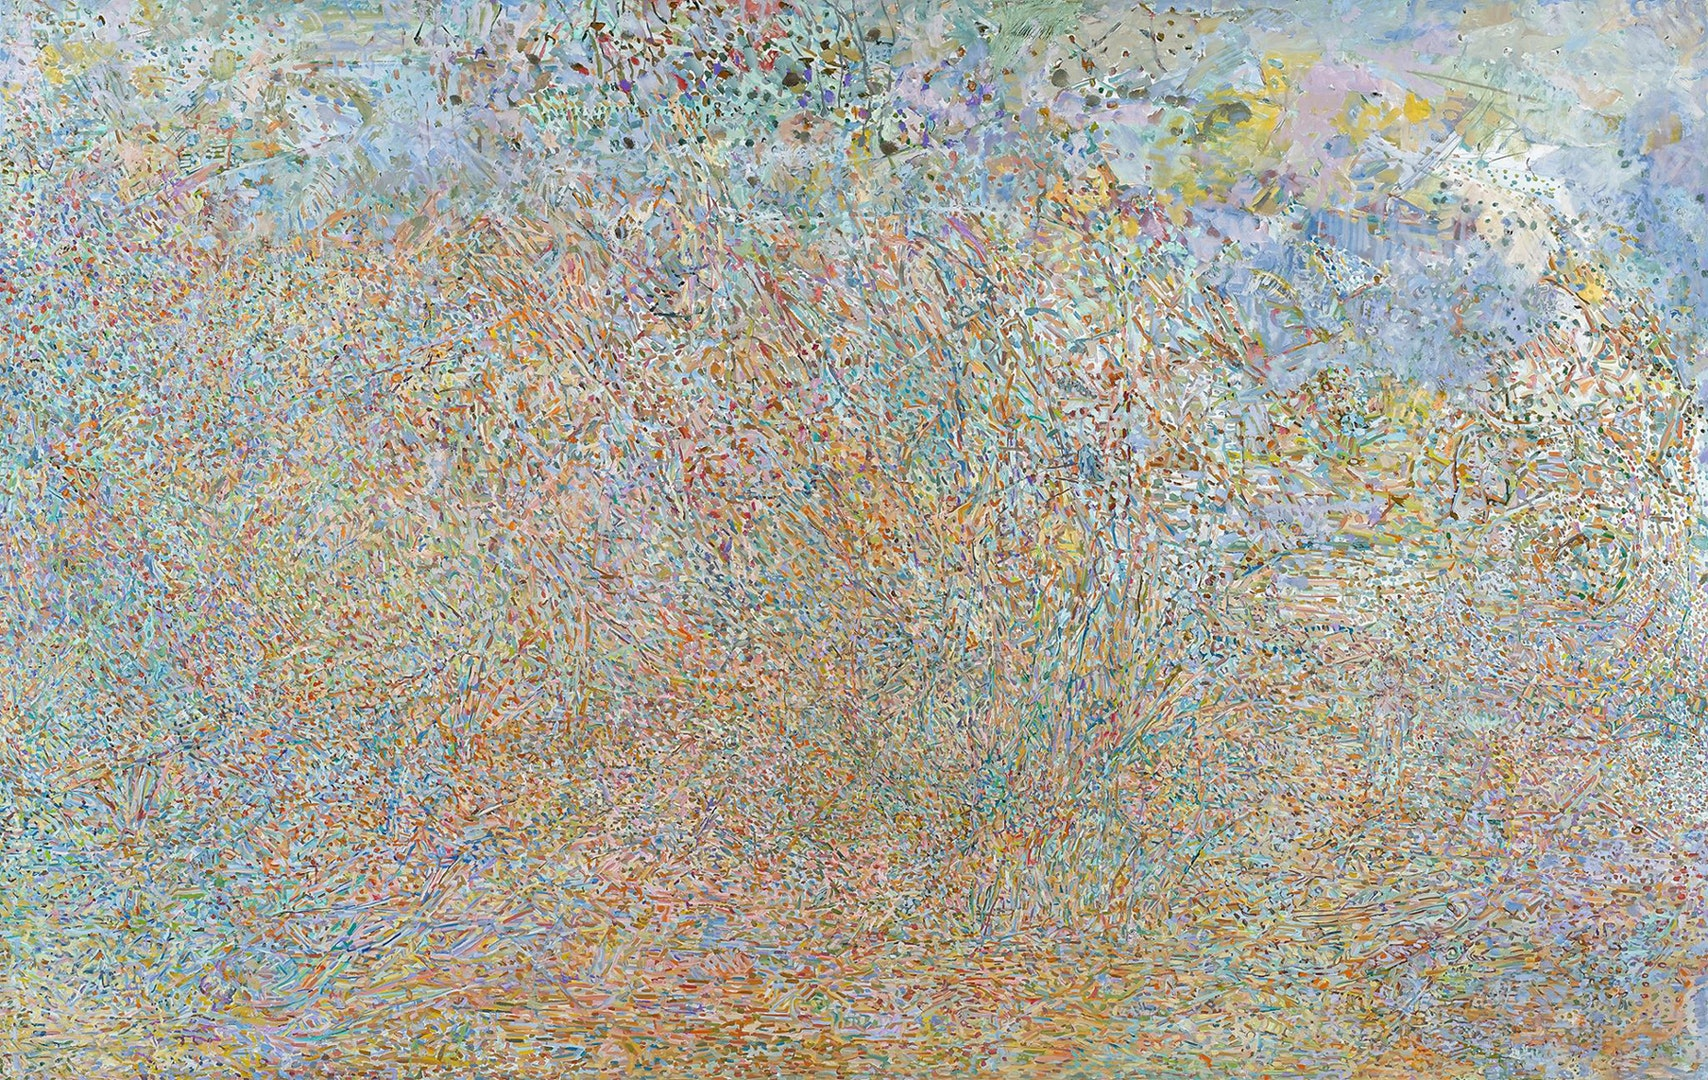 'Odem forest 2017', Zohar Cohen, Oil on linen, 124 x 197 cm